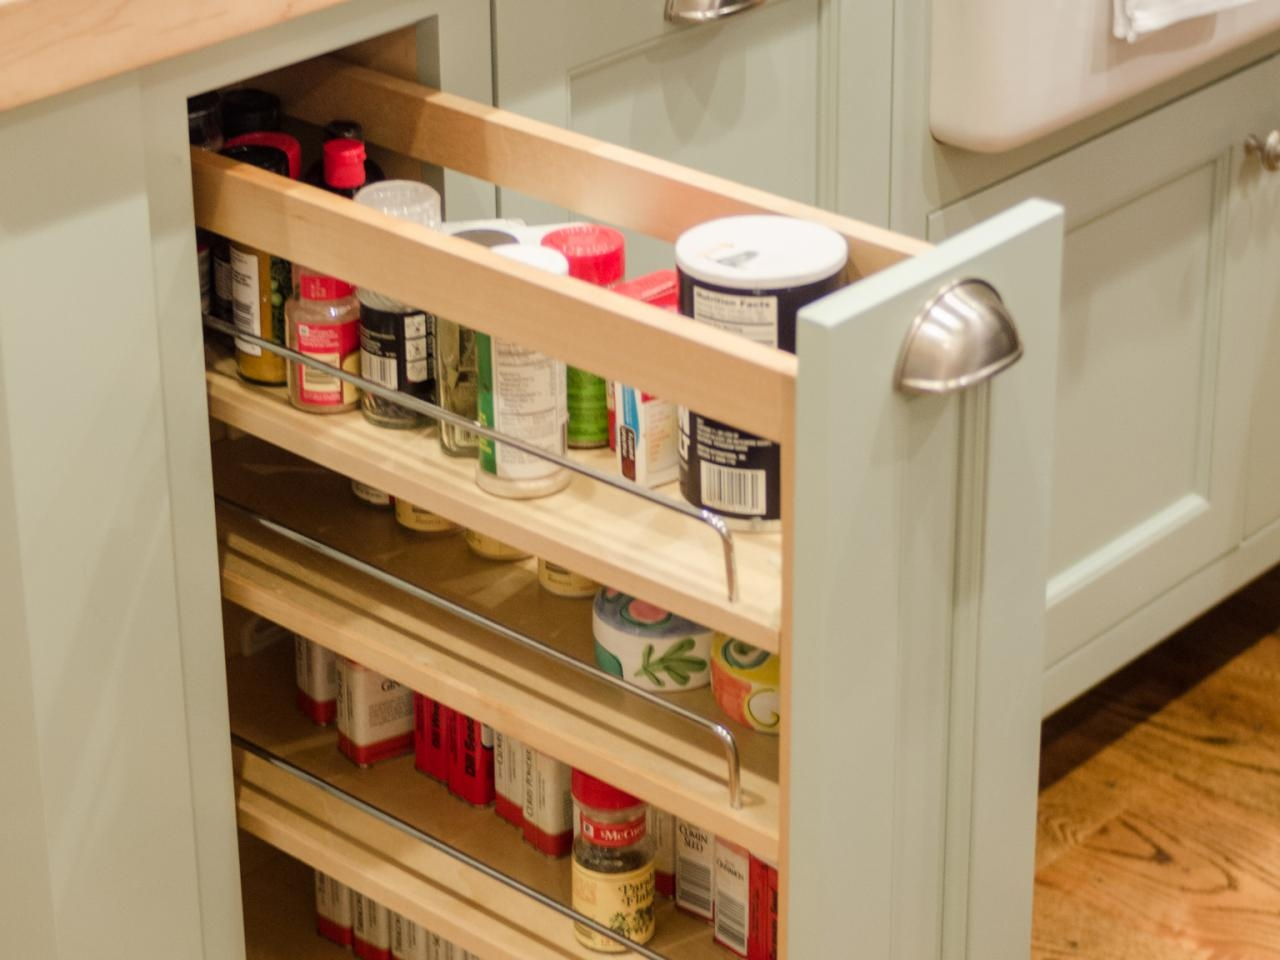 Spice Racks For Kitchen Cabinets Pictures Options Tips Ideas Regarding Storage Racks For Kitchen Cupboards (View 3 of 25)